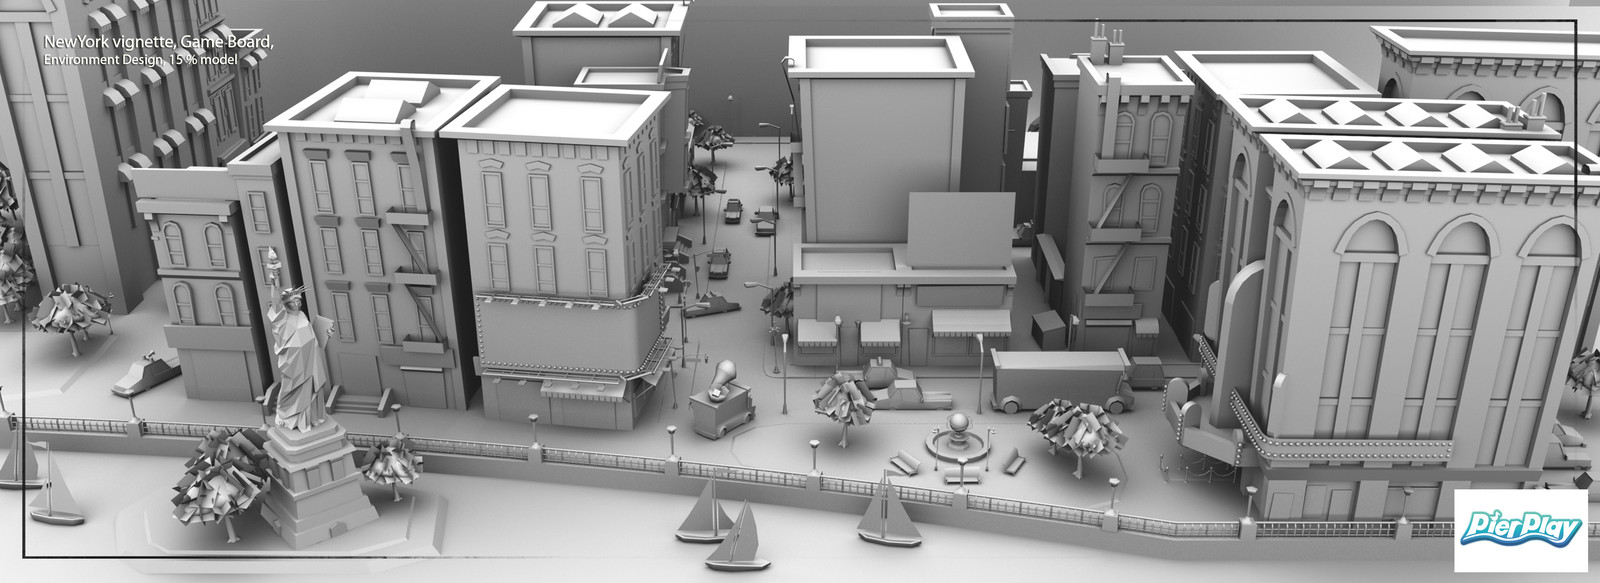 Design Environment, Modeled 15%, 75% by outsourced modelers